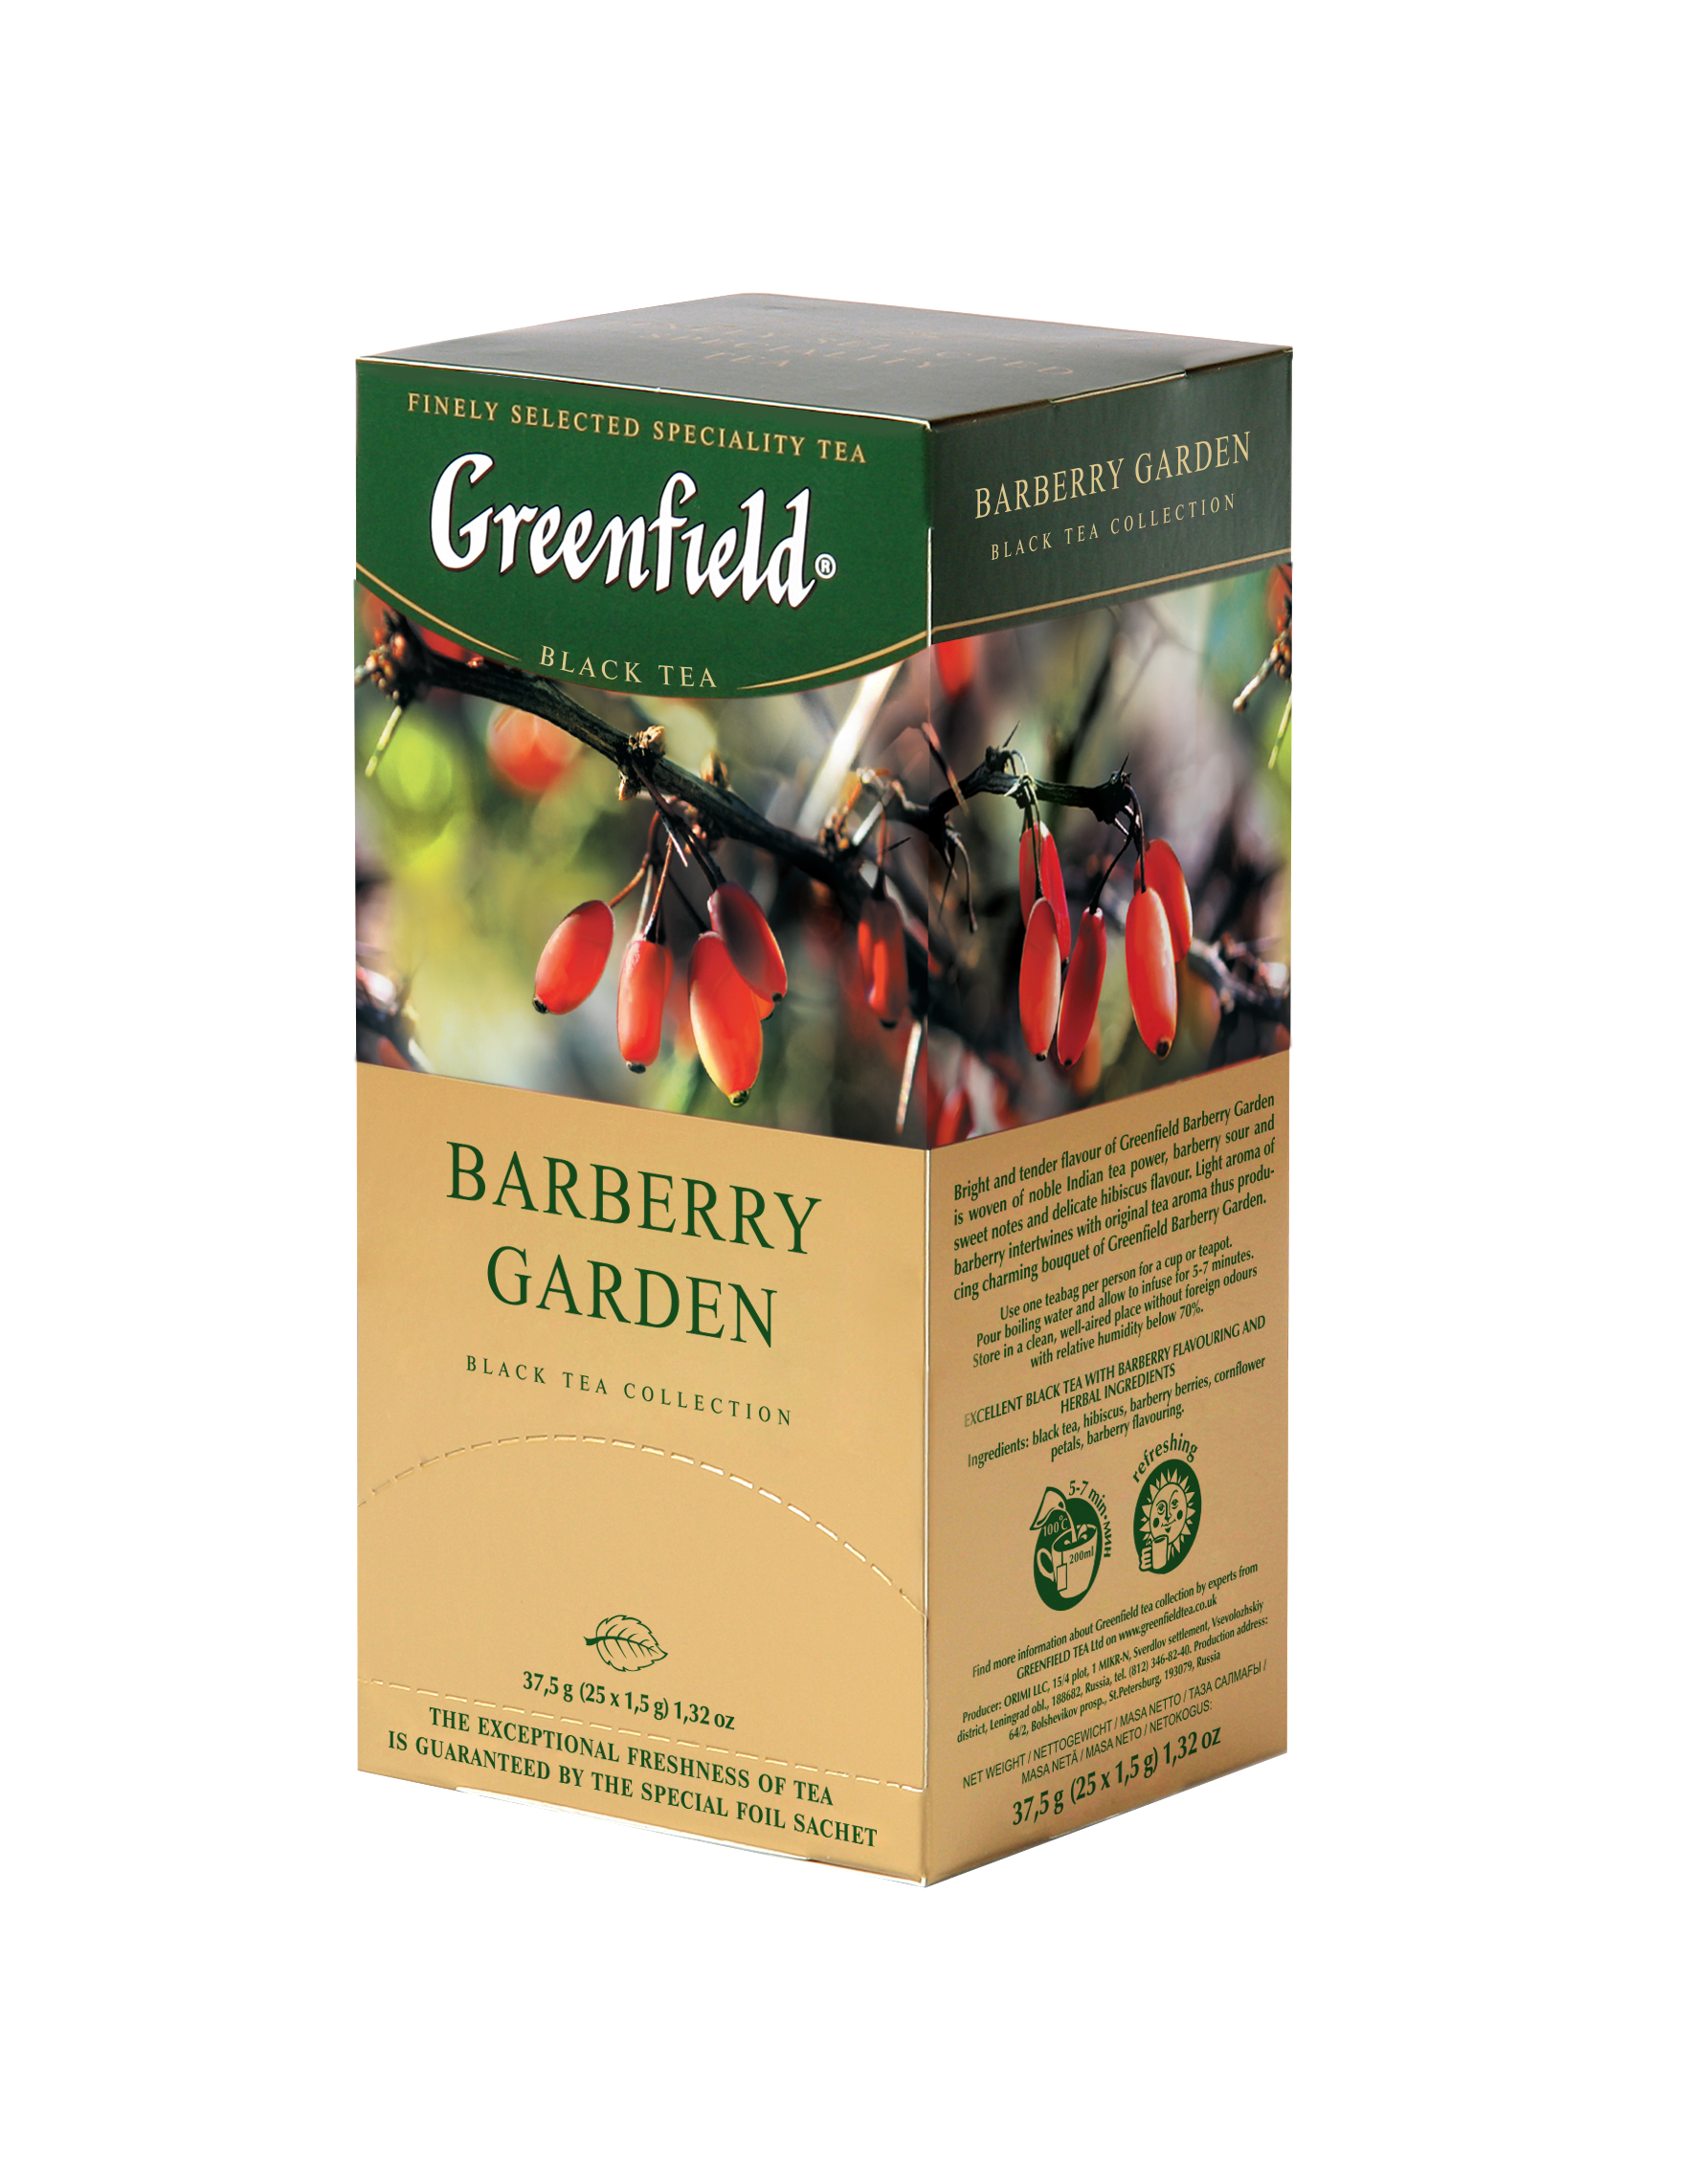 Barberry garden Greenfield